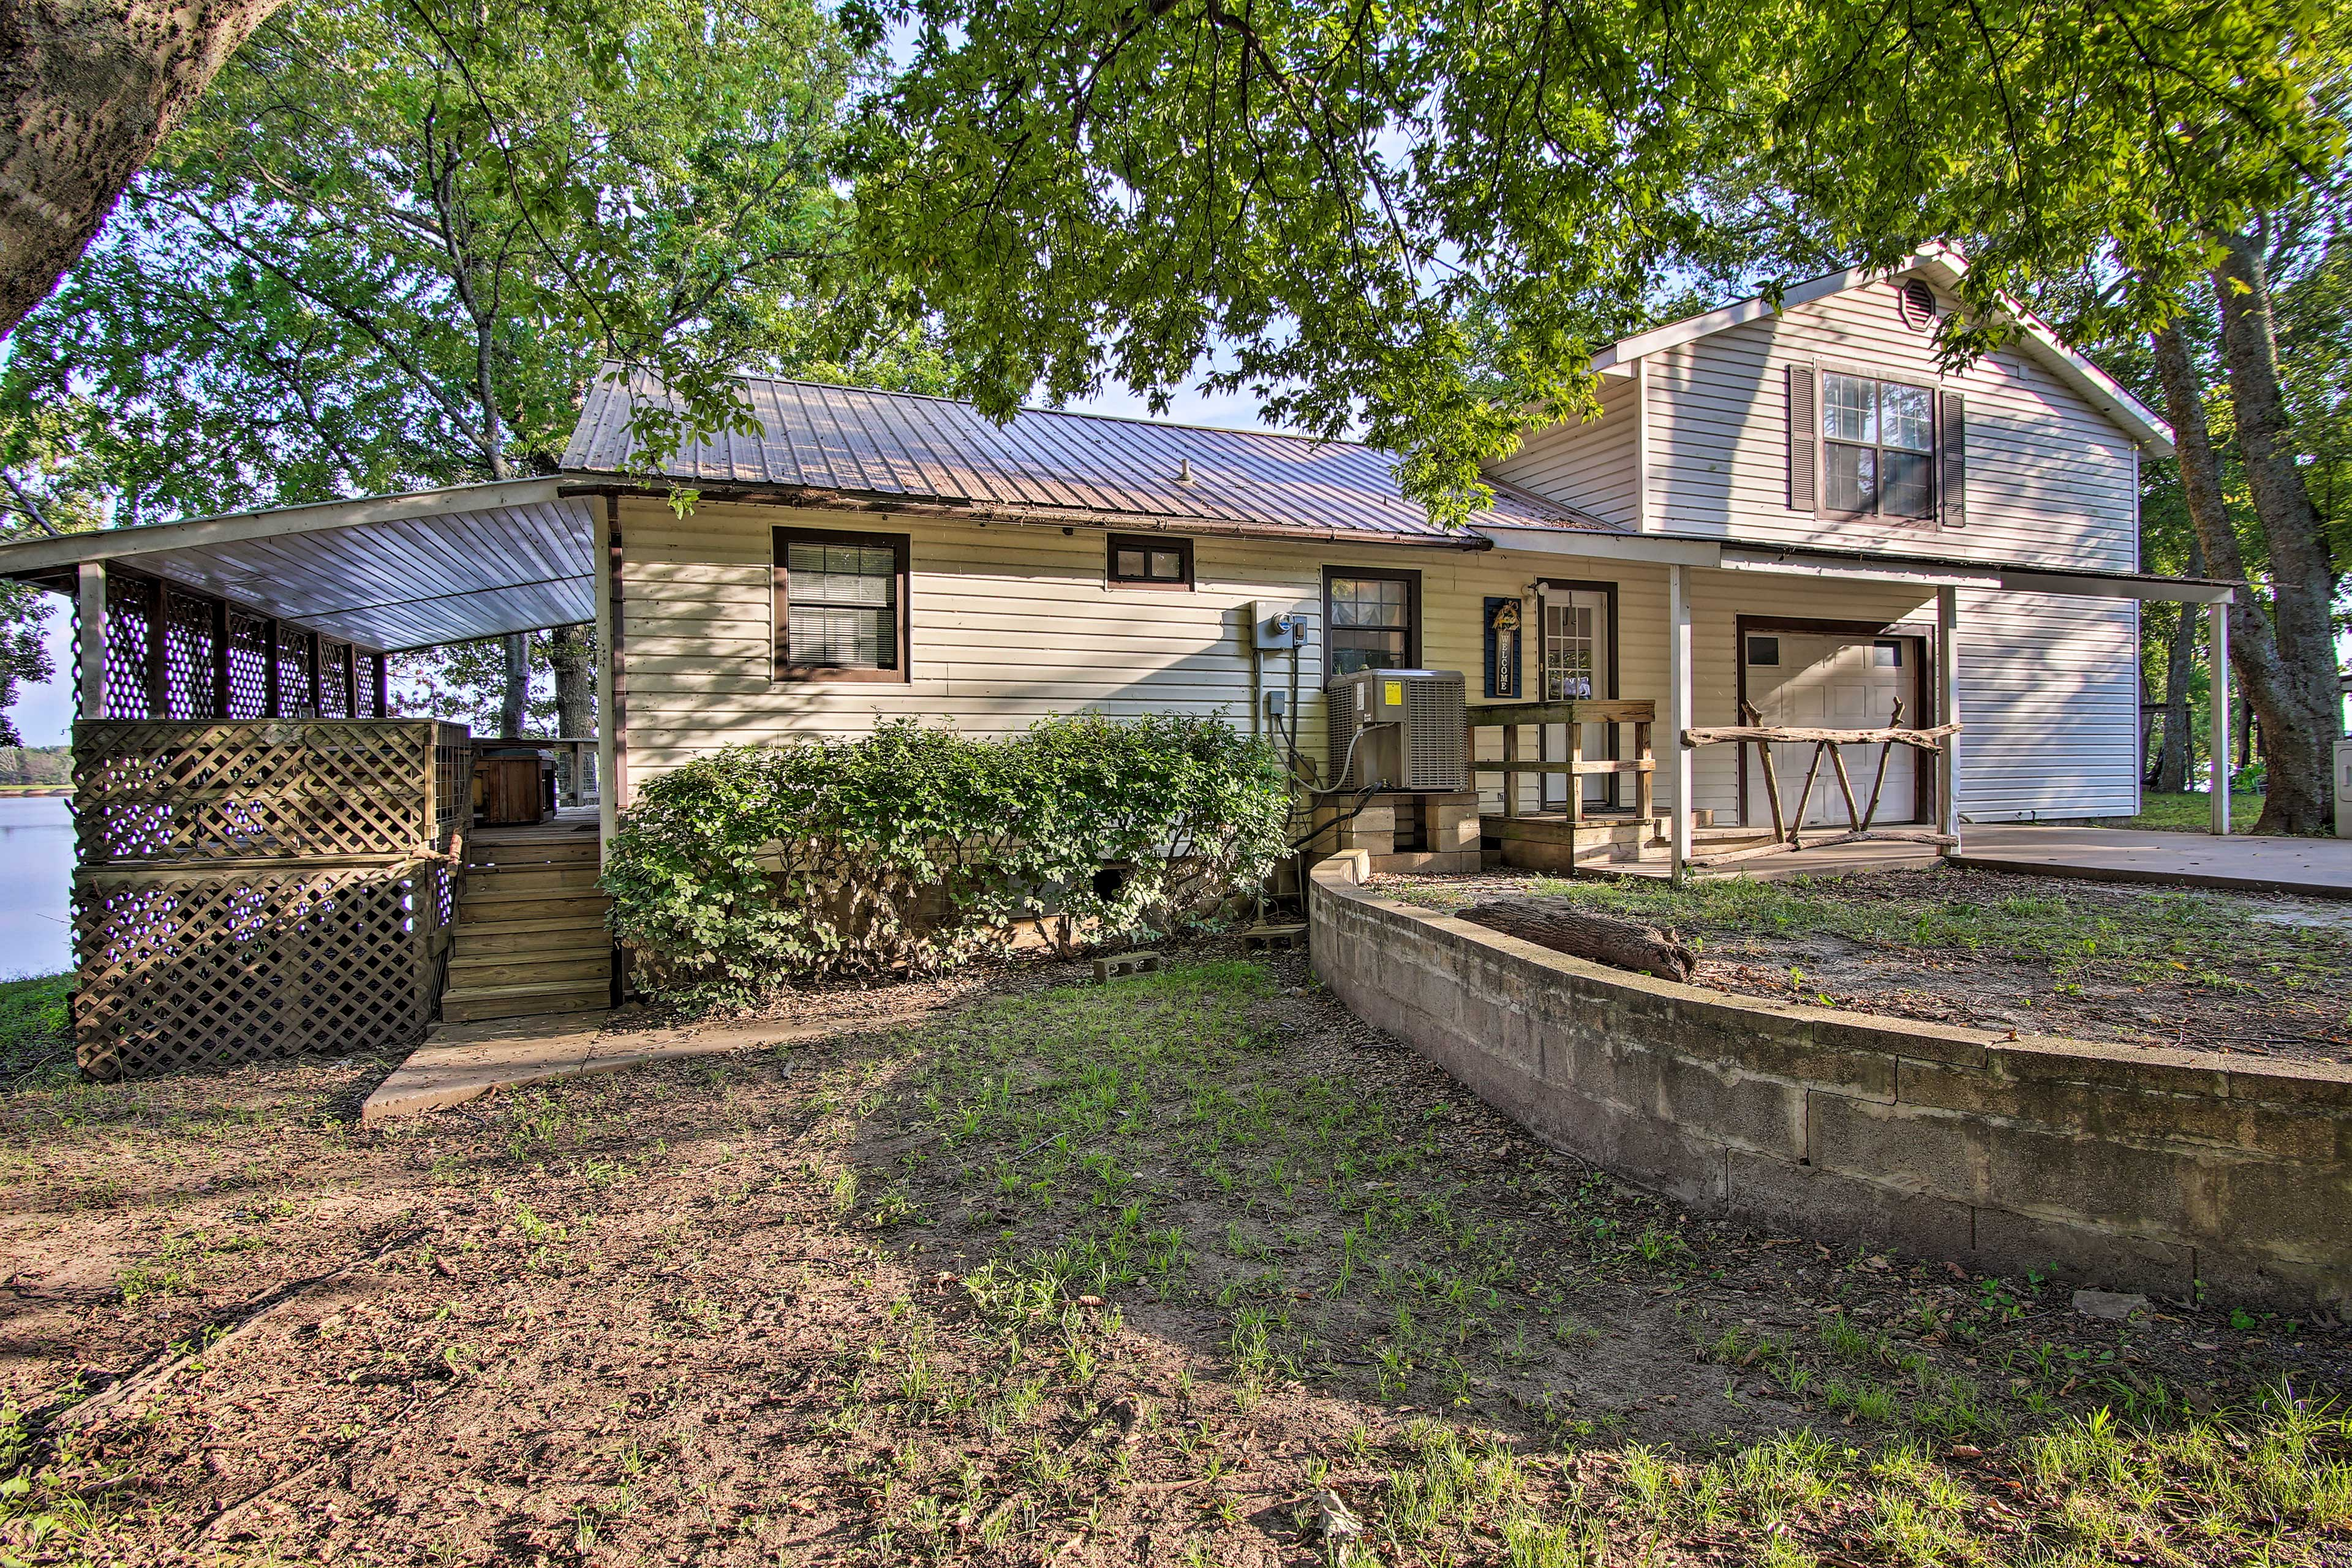 Call this charming vacation rental your home base for experiencing Grand Lake!